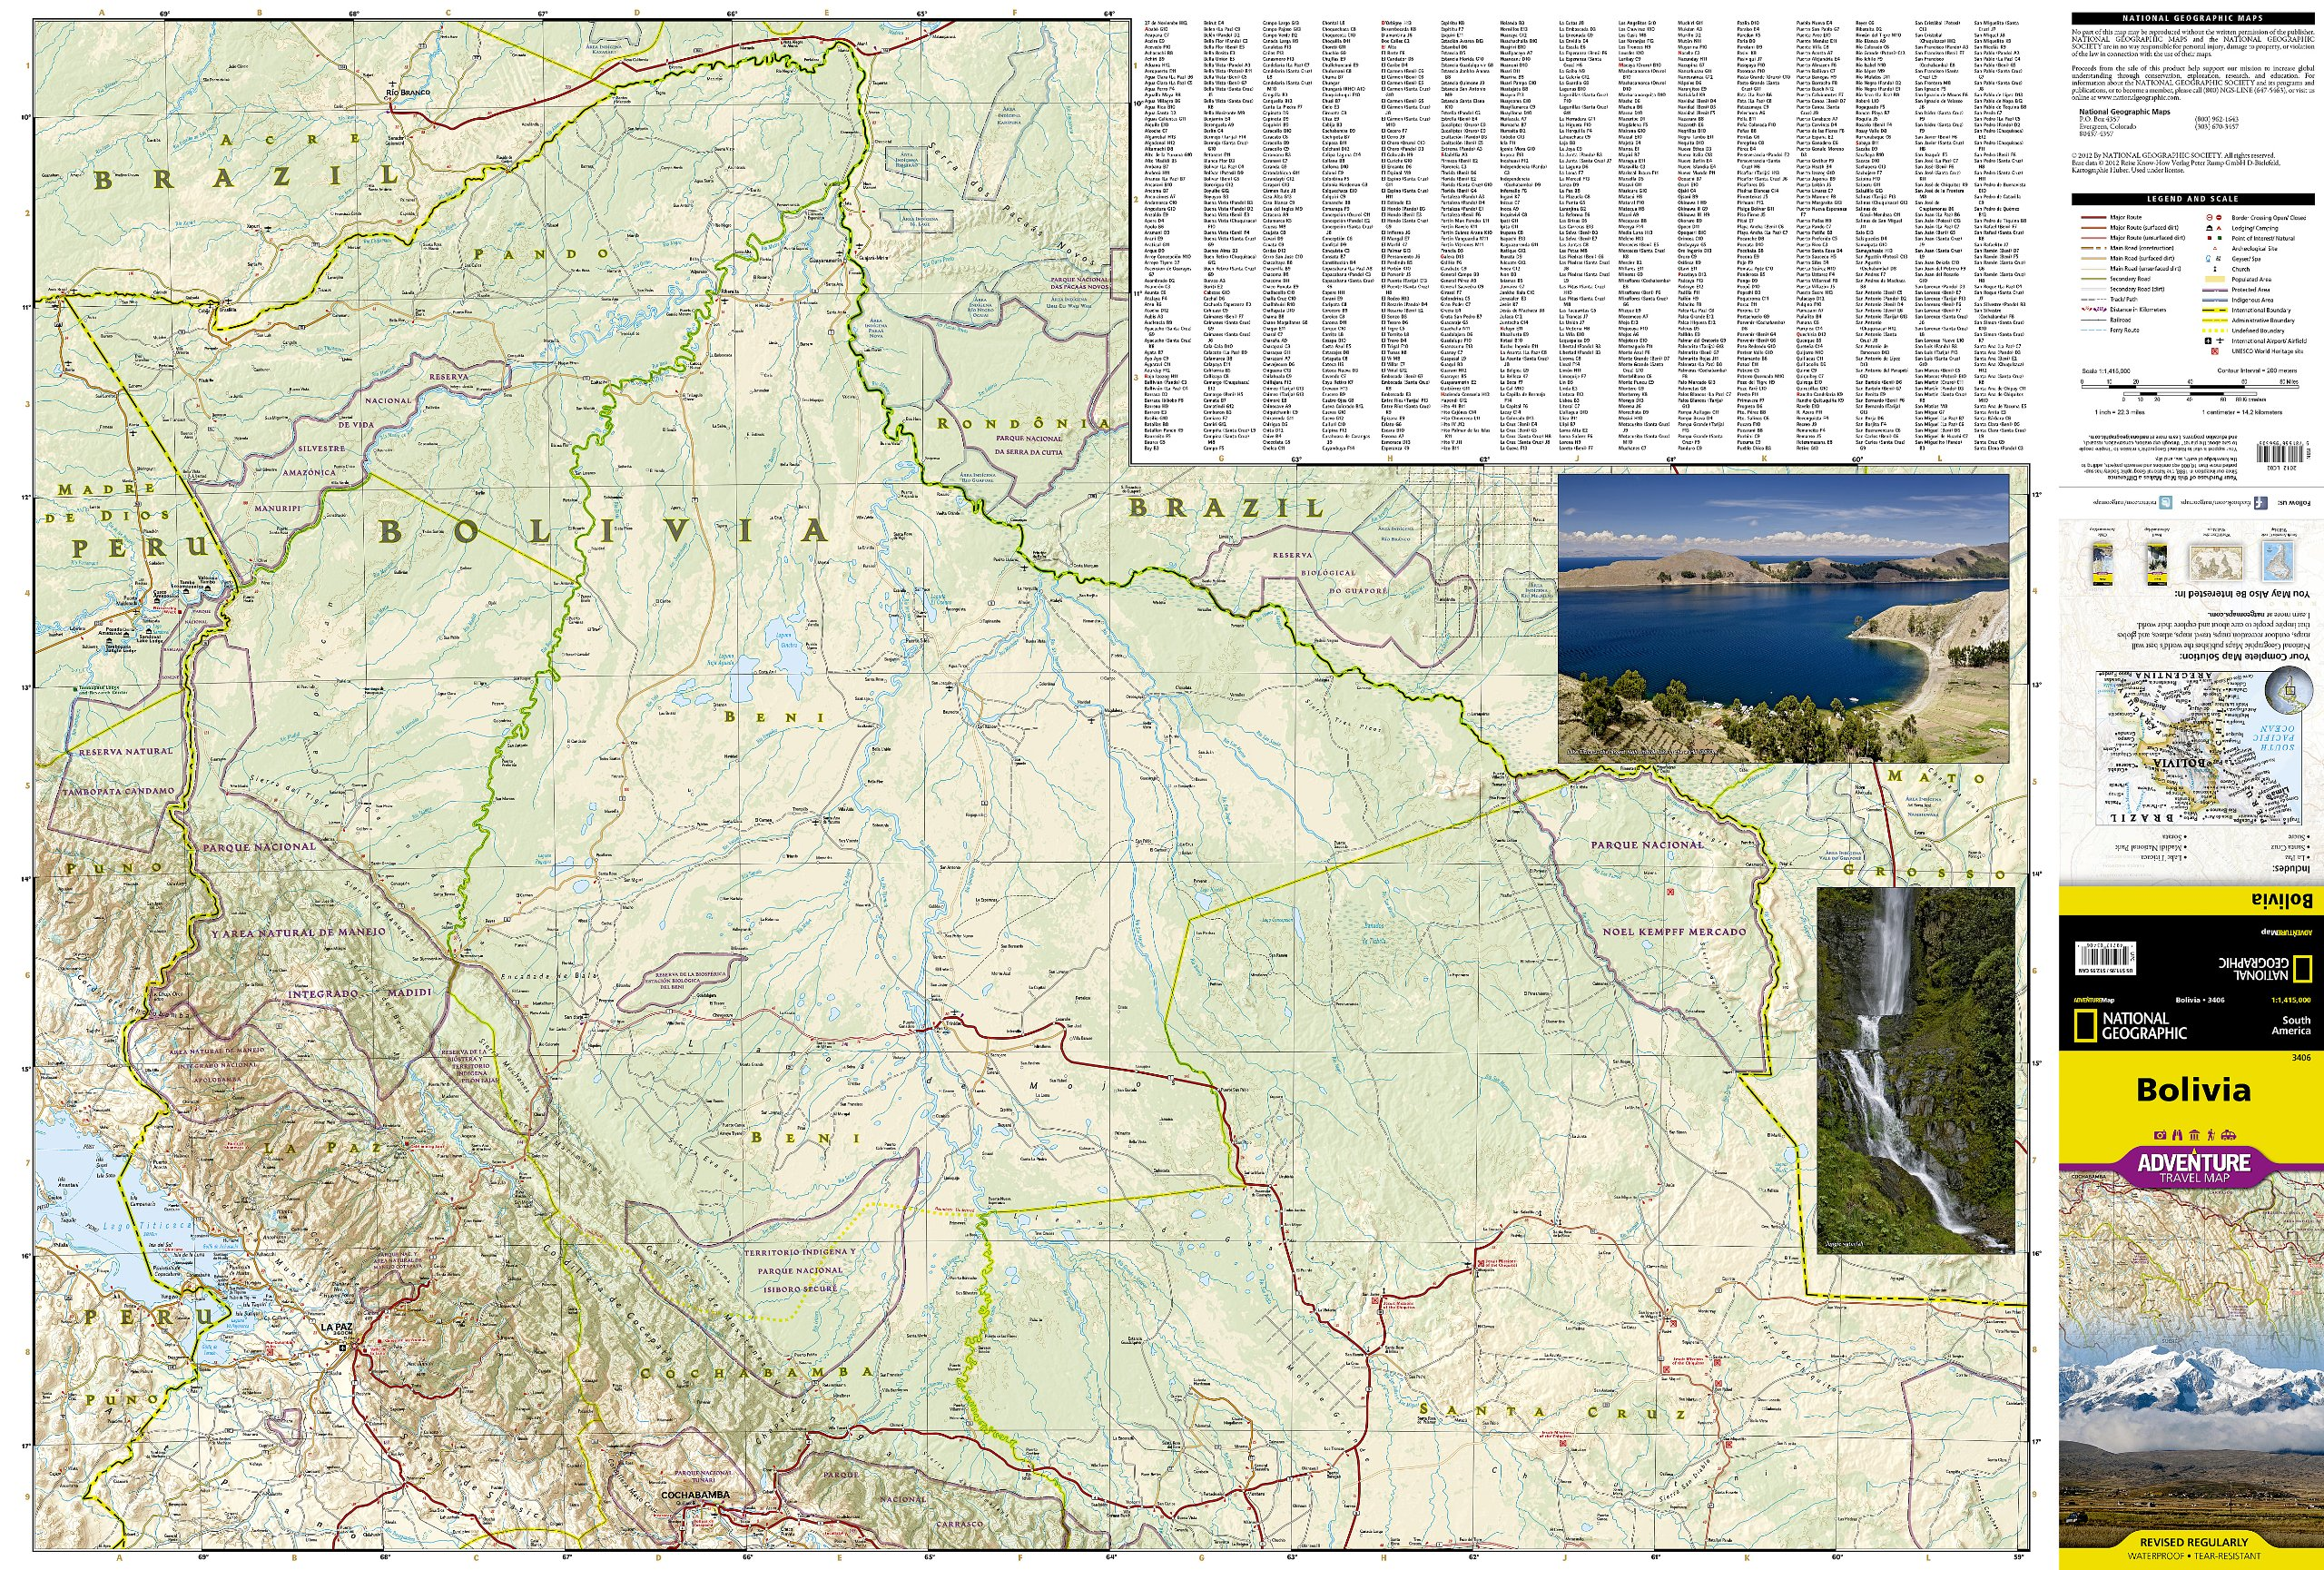 Bolivia National Geographic Adventure Map National Geographic - Bolivia map